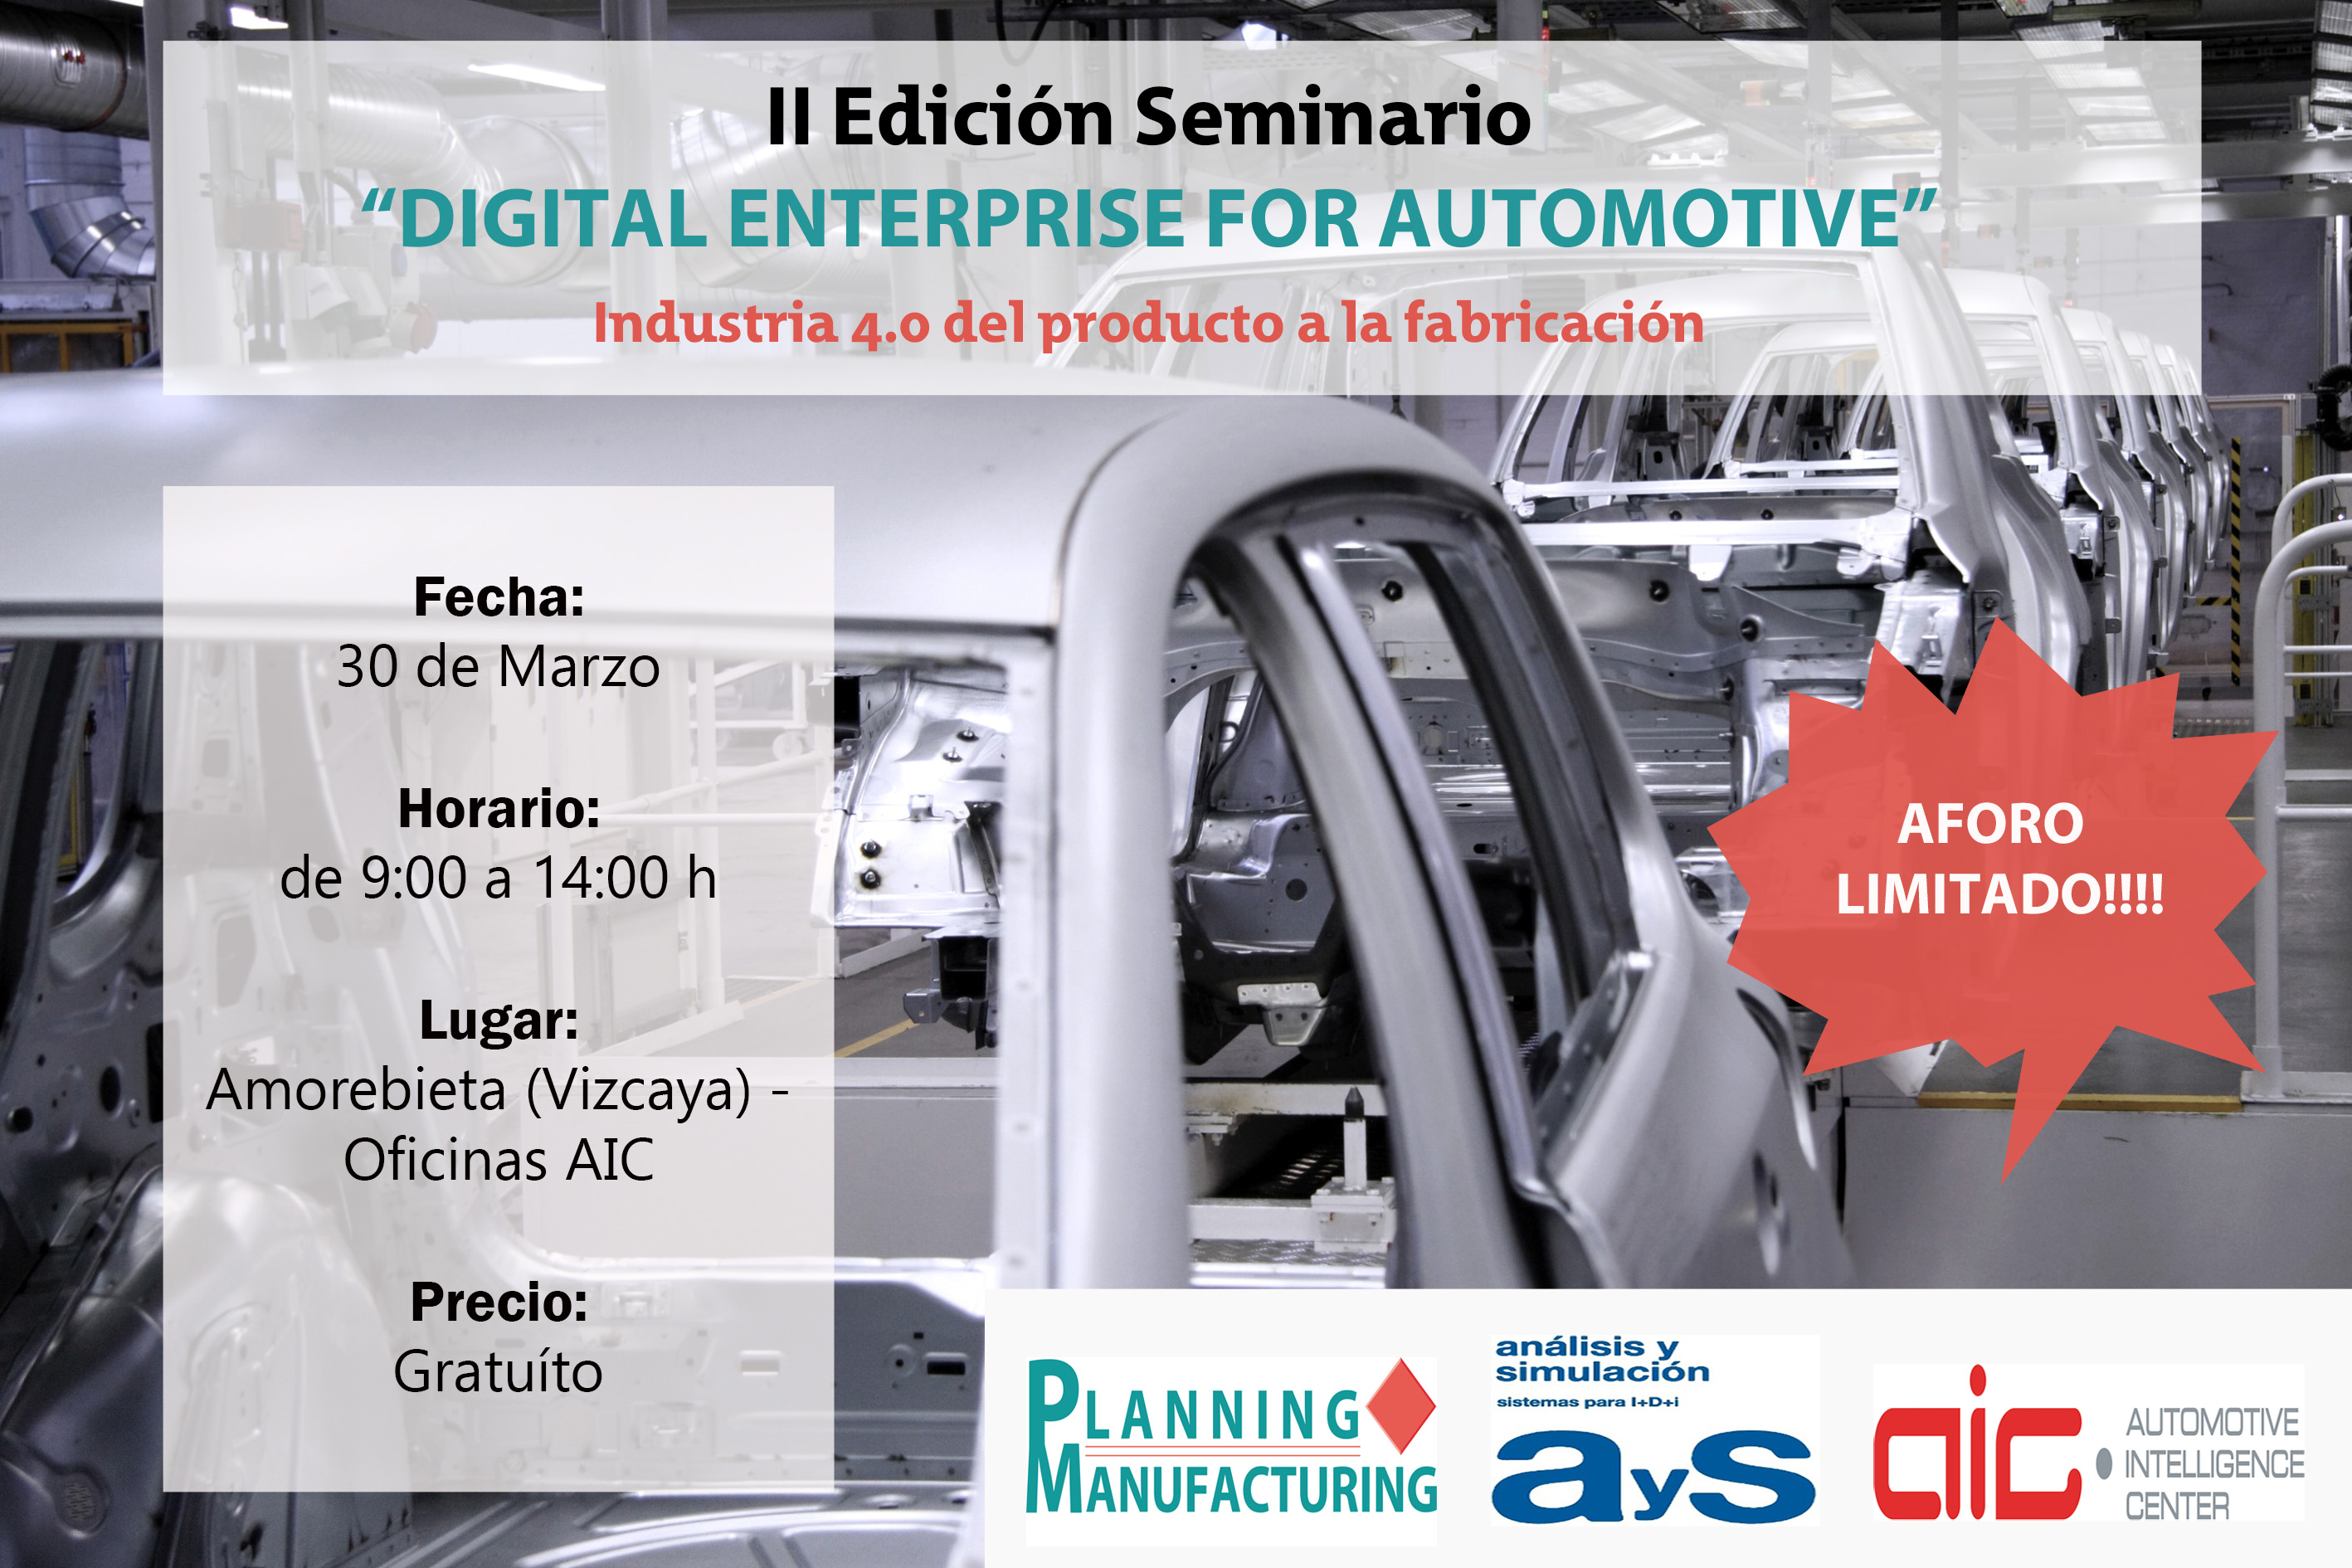 ¡Últimas Plazas! Seminario Digital Enterprise for Automotive - II Edición